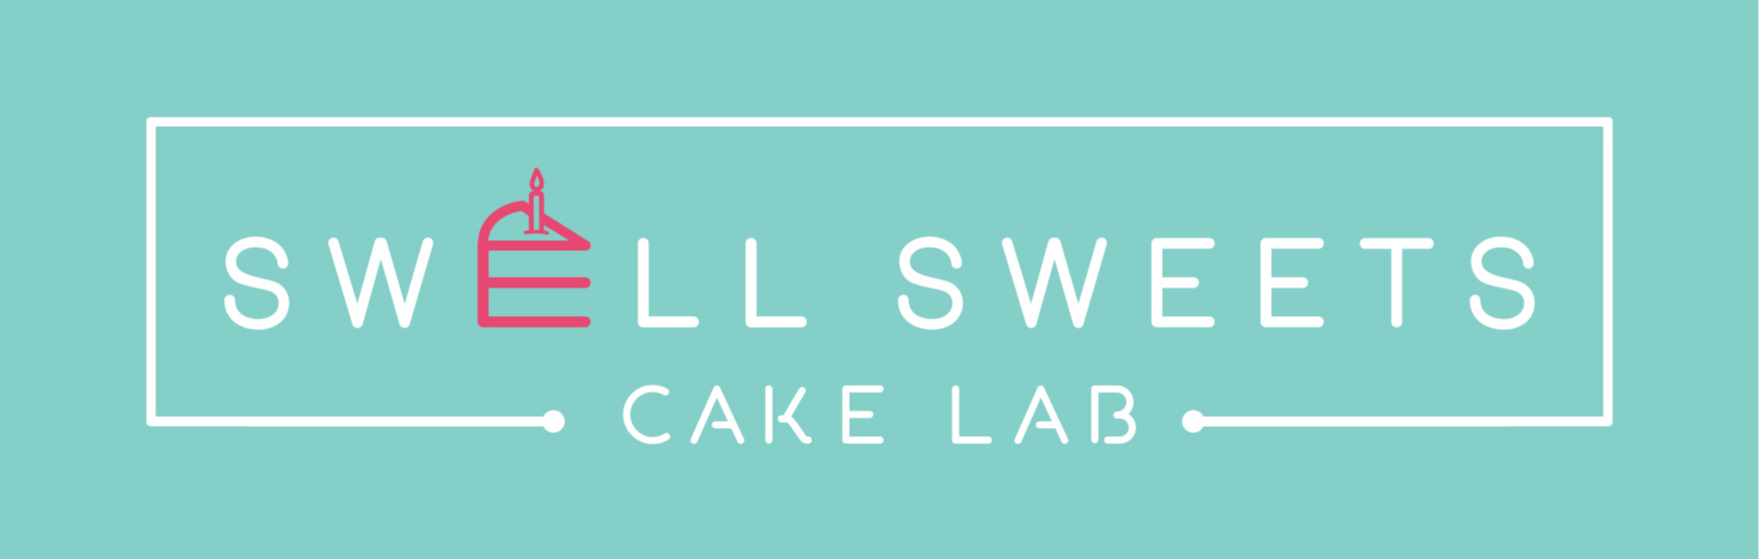 Swell Sweets Cake Lab